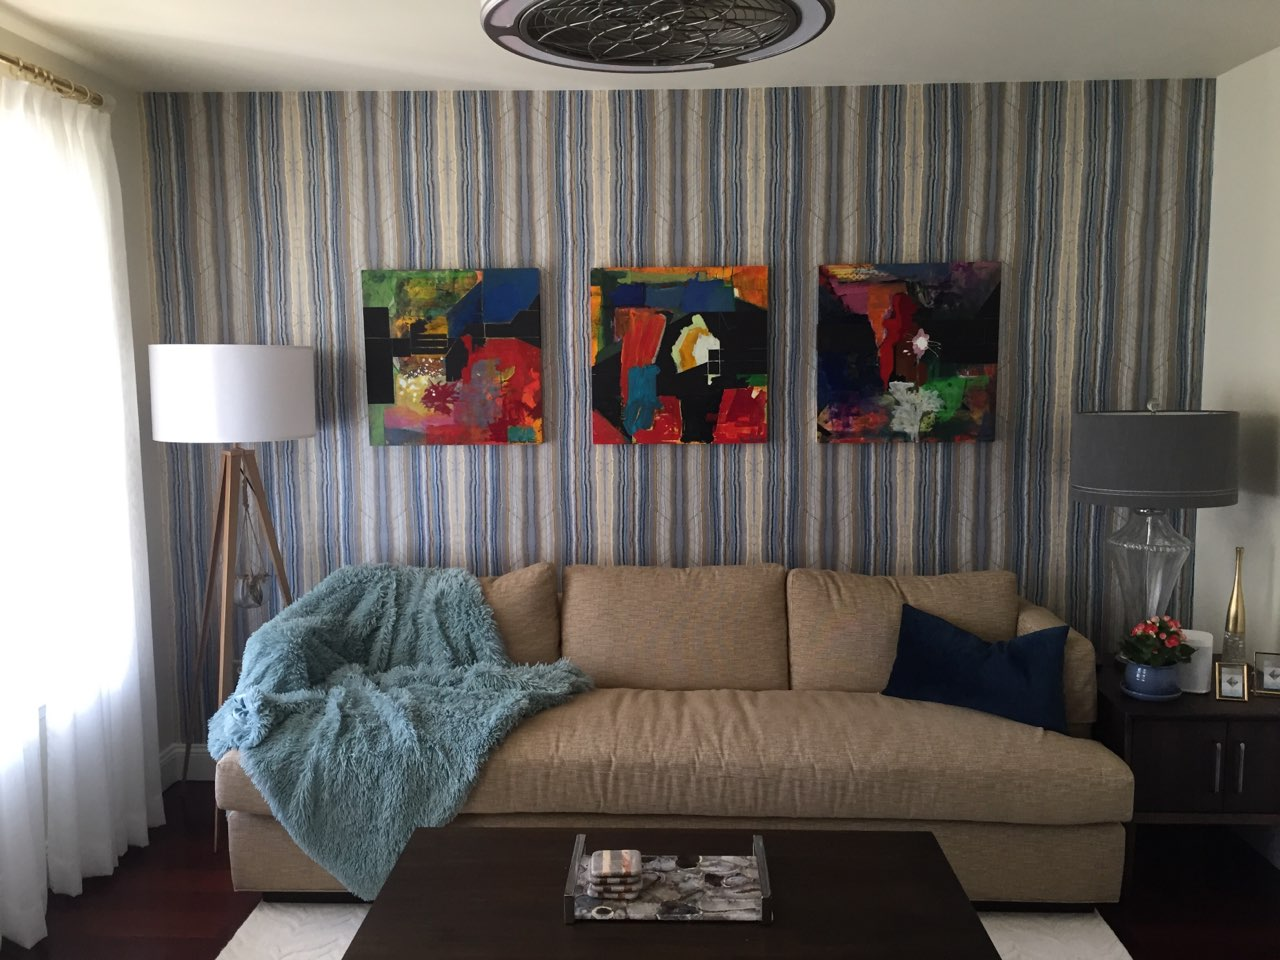 lounge room with blue and tan vertical striped wallpaper on an accent wall